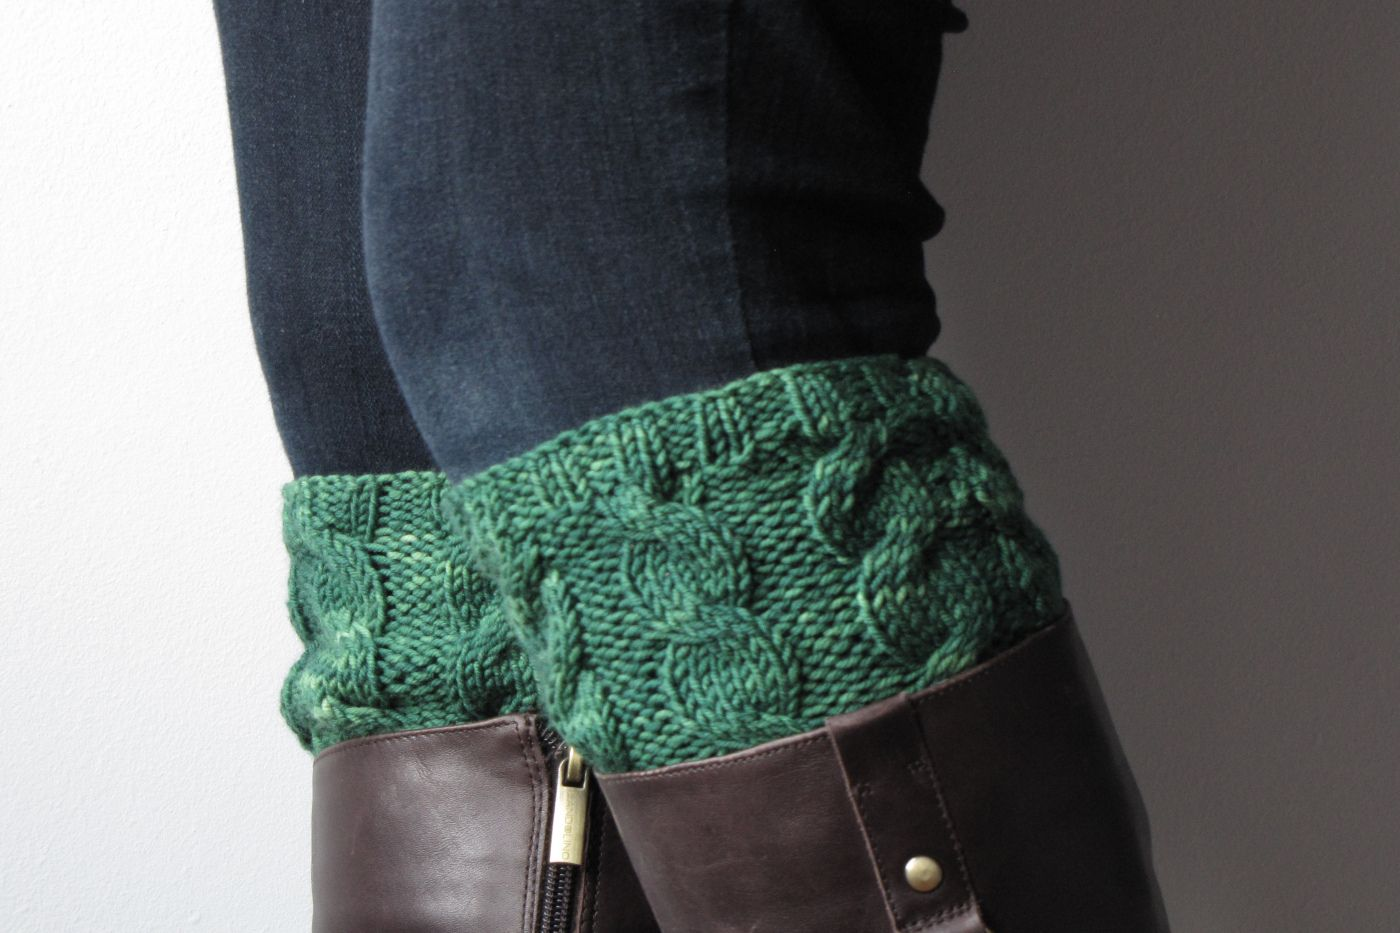 Free boot topper pattern | Knit it | Pinterest | Winterreise ...